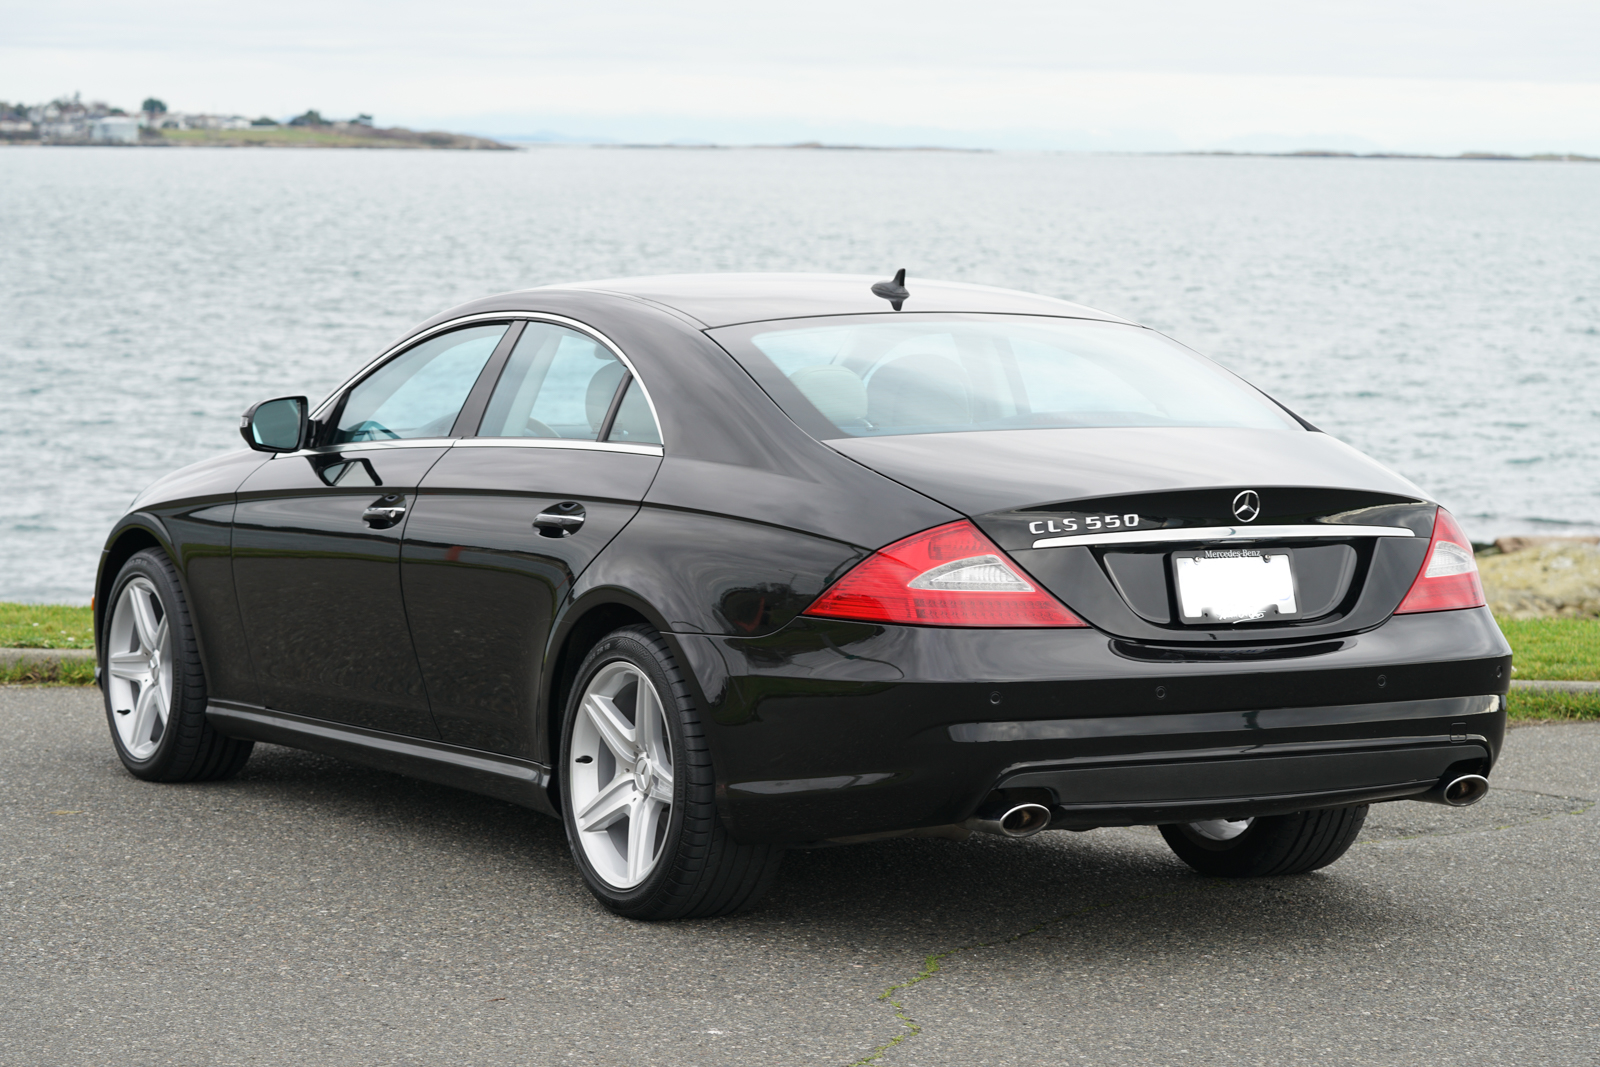 2009 mercedes benz cls 550 for sale silver arrow cars ltd for Mercedes benz cls 2009